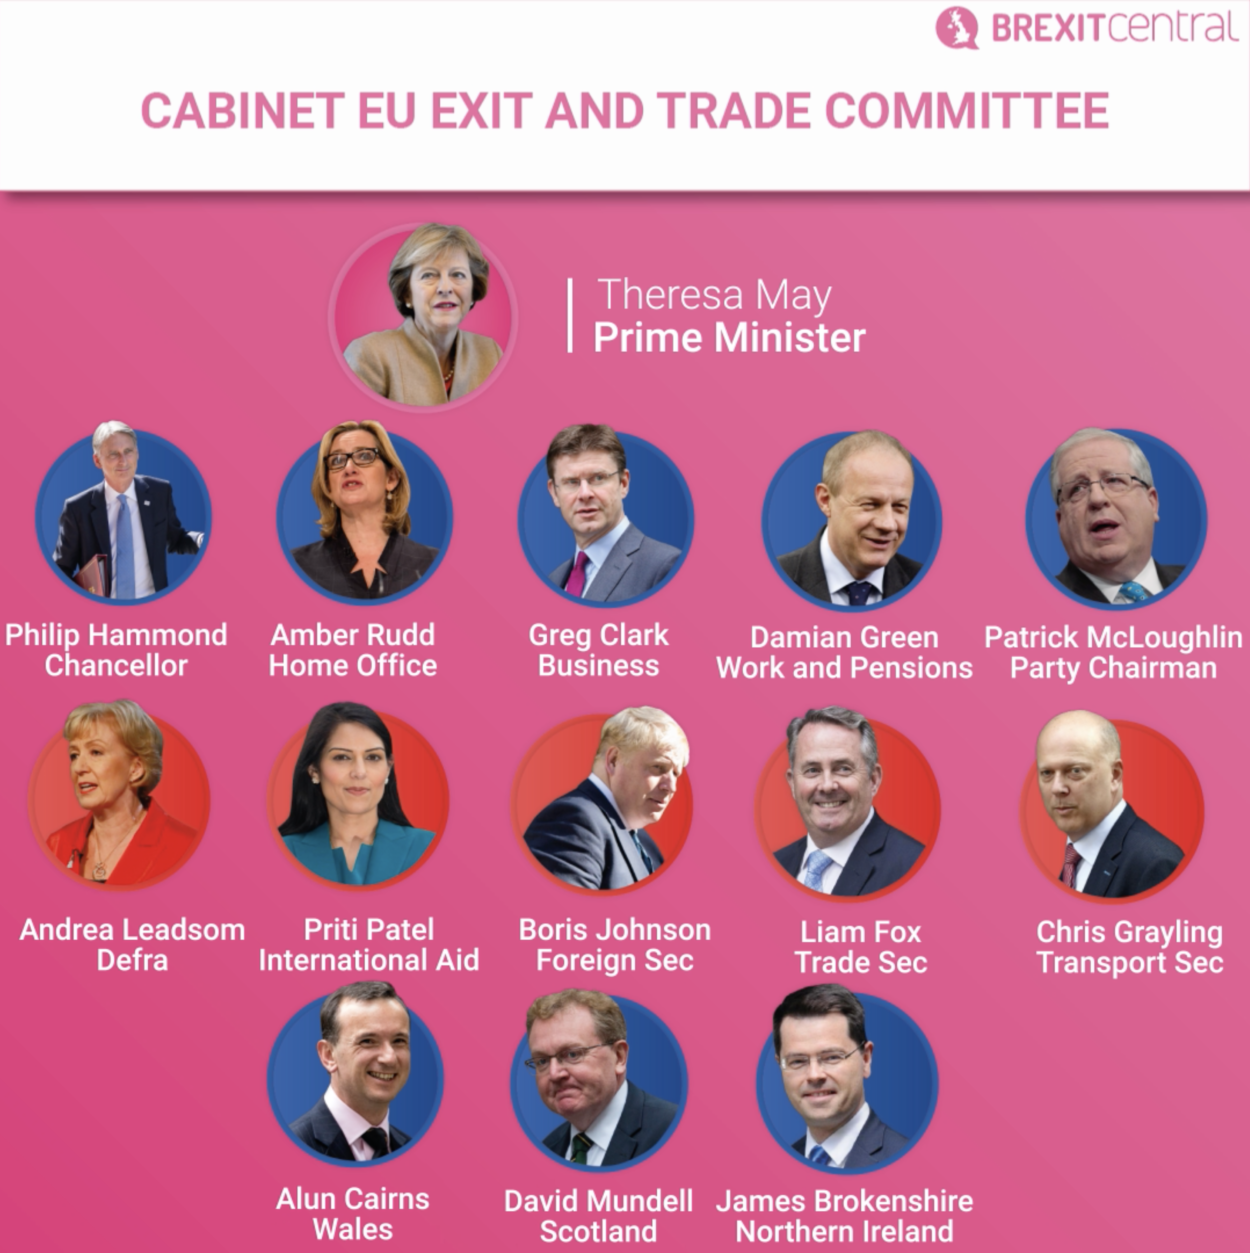 Clean Brexit boost as Theresa May rightly includes all cabinet Brexiteers in EU negotiation planning